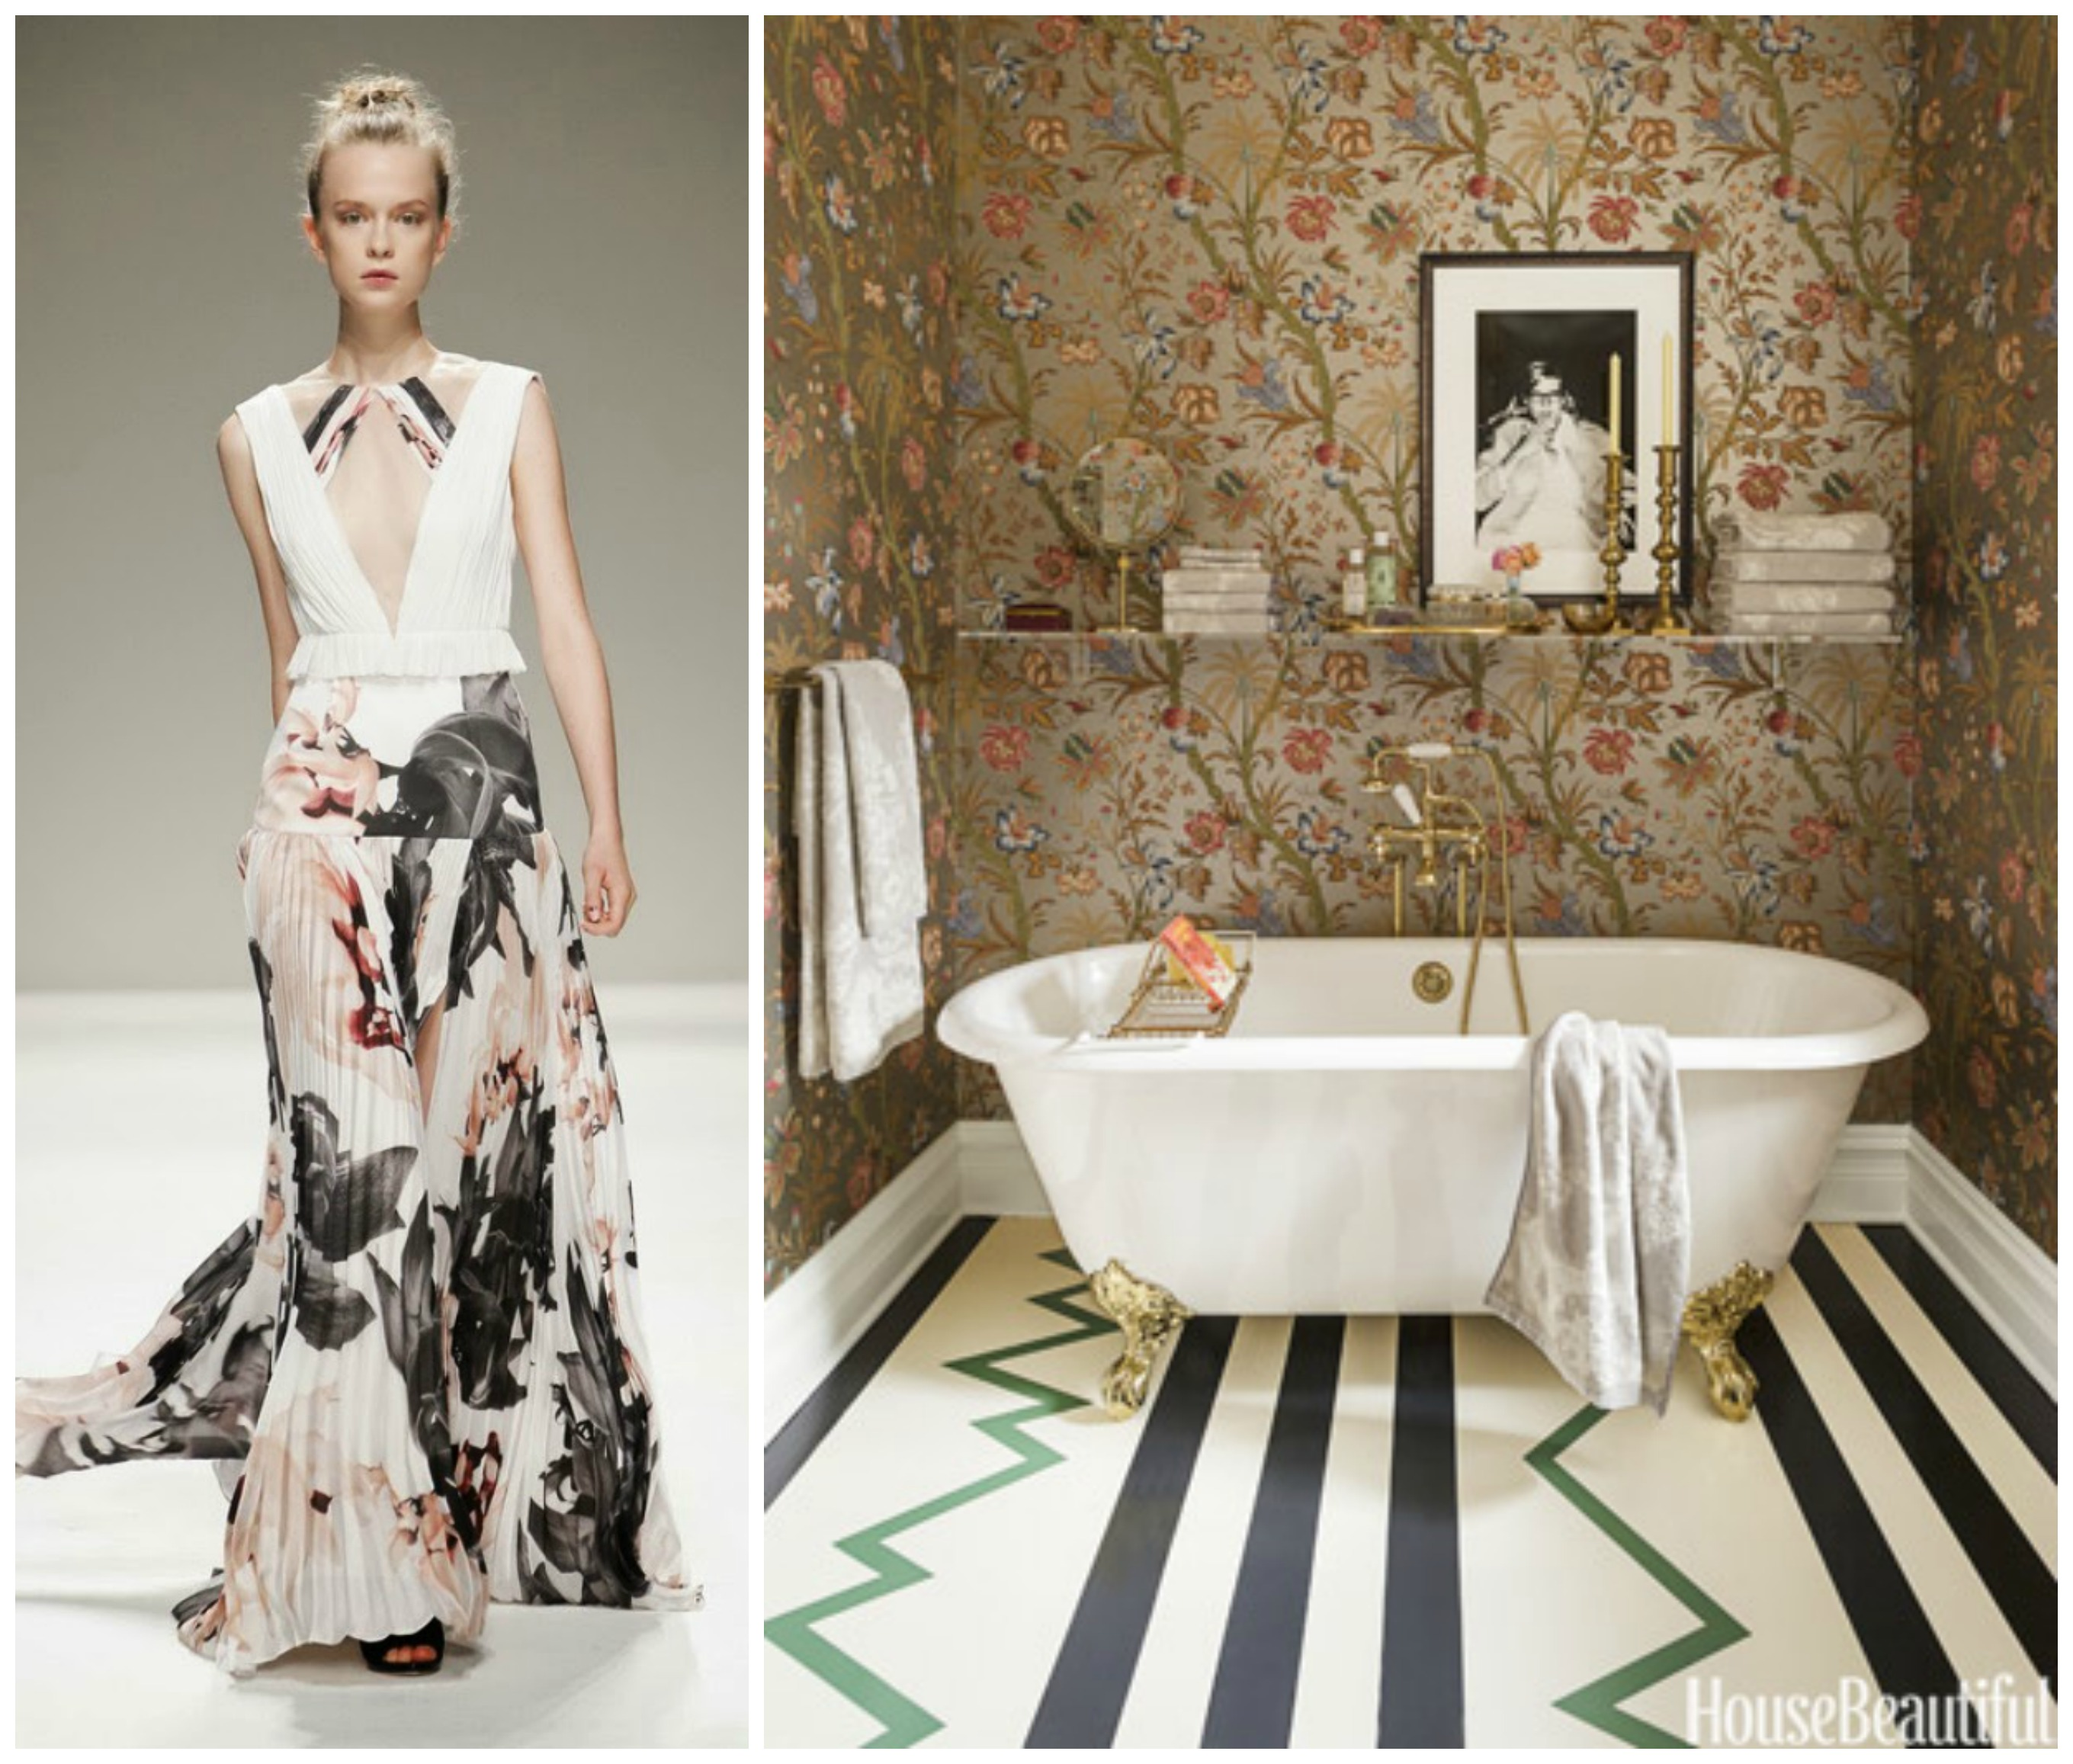 Fashion Bathroom Inspiring Couture Fashion Paired With Luxury Bathrooms